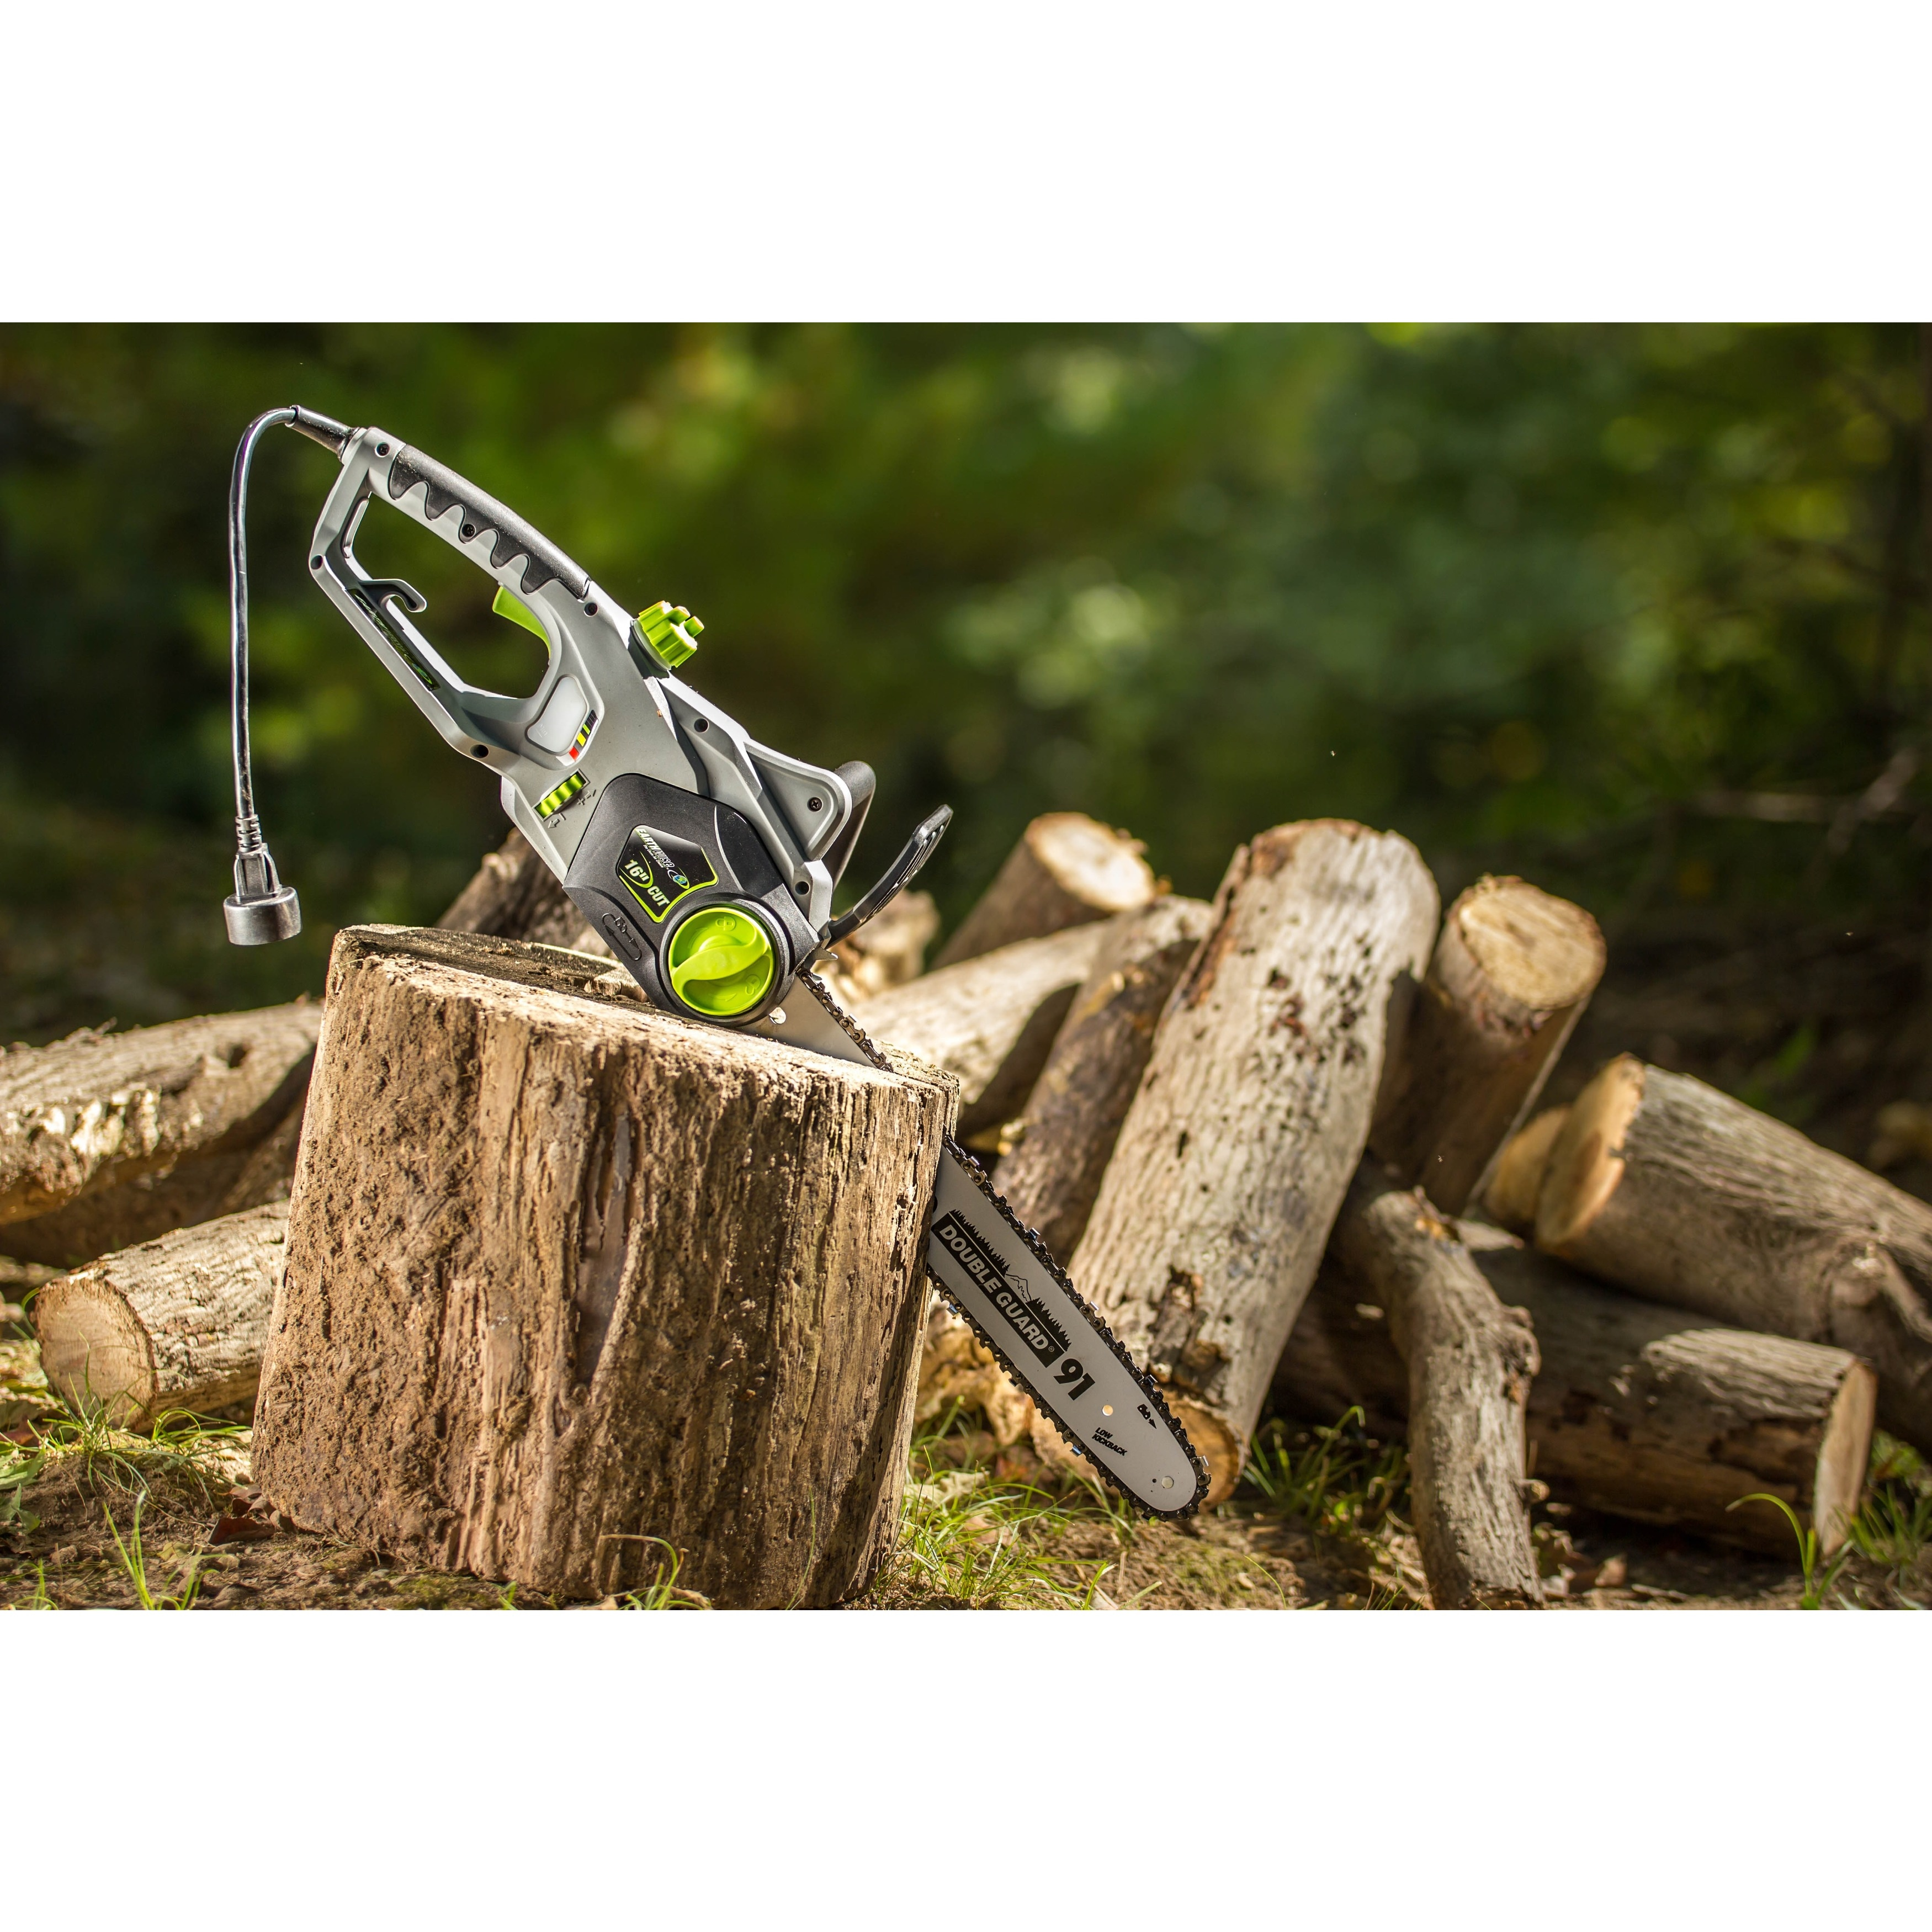 Earthwise 12 amp corded 16 inch electric chain saw free shipping earthwise 12 amp corded 16 inch electric chain saw free shipping today overstock 16854753 greentooth Gallery